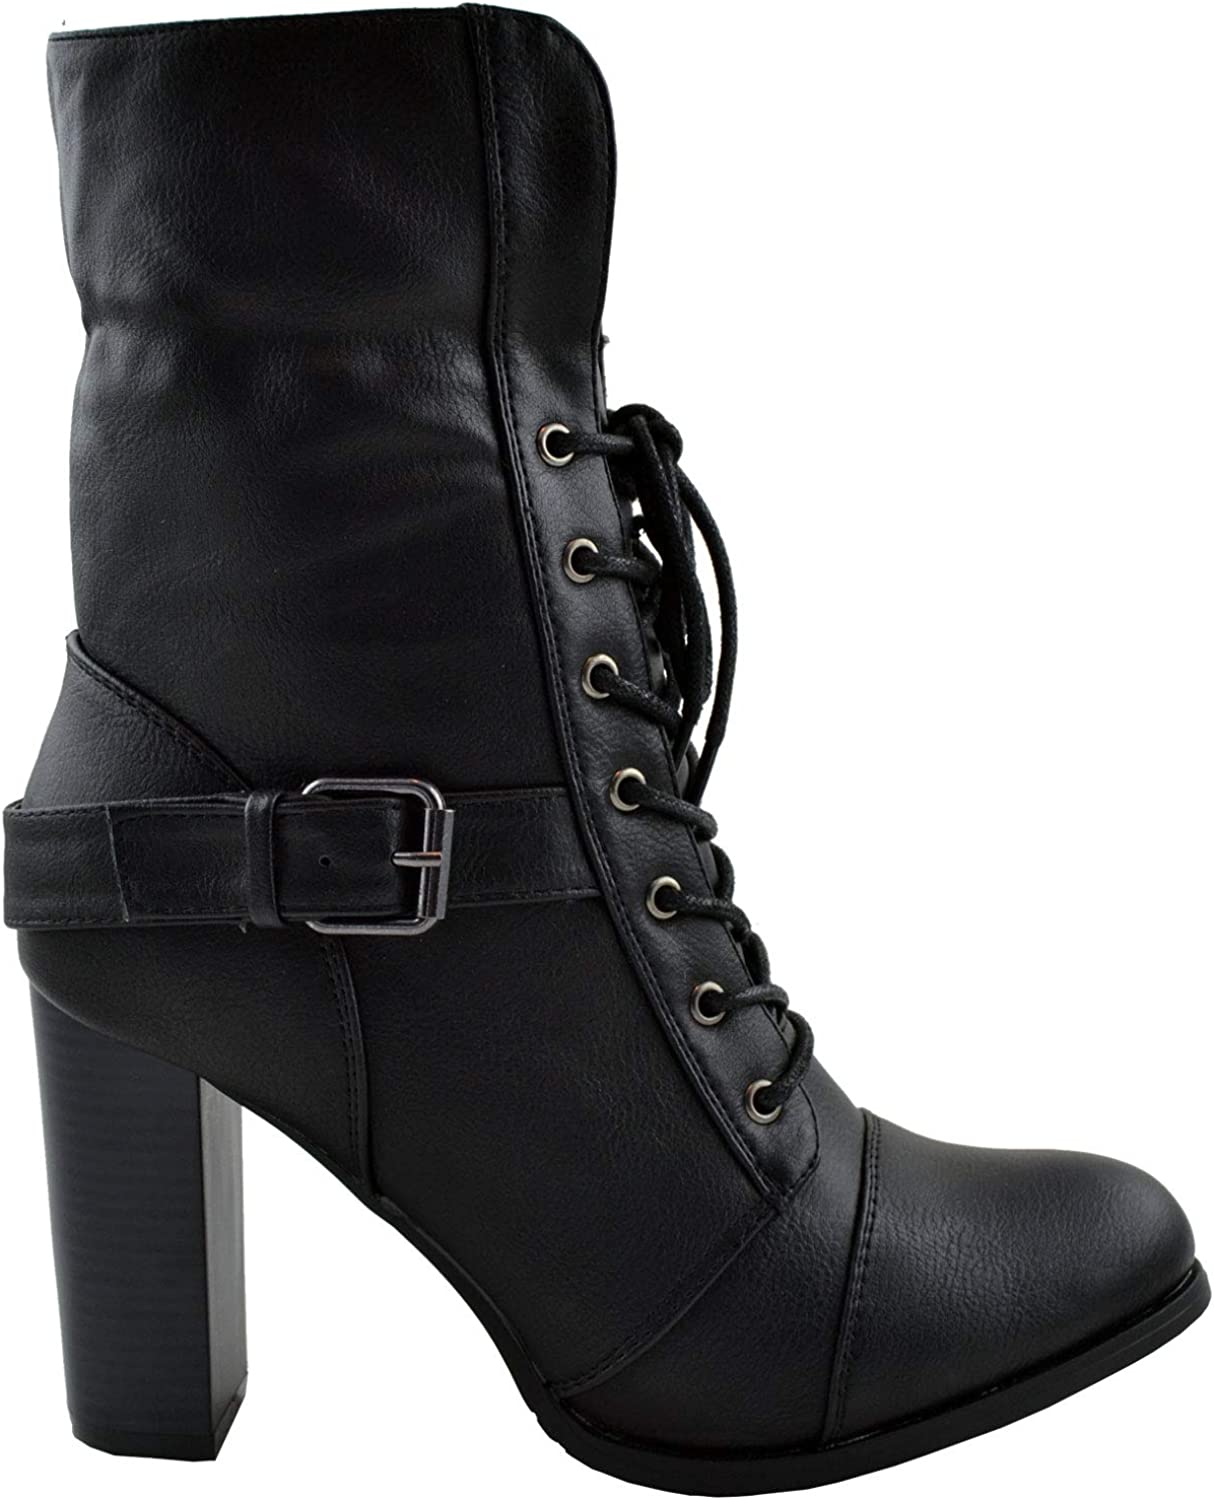 Generation Y Womens Ankle Boots Mid Calf Chunky Heels Fold Over Fleece Cuff